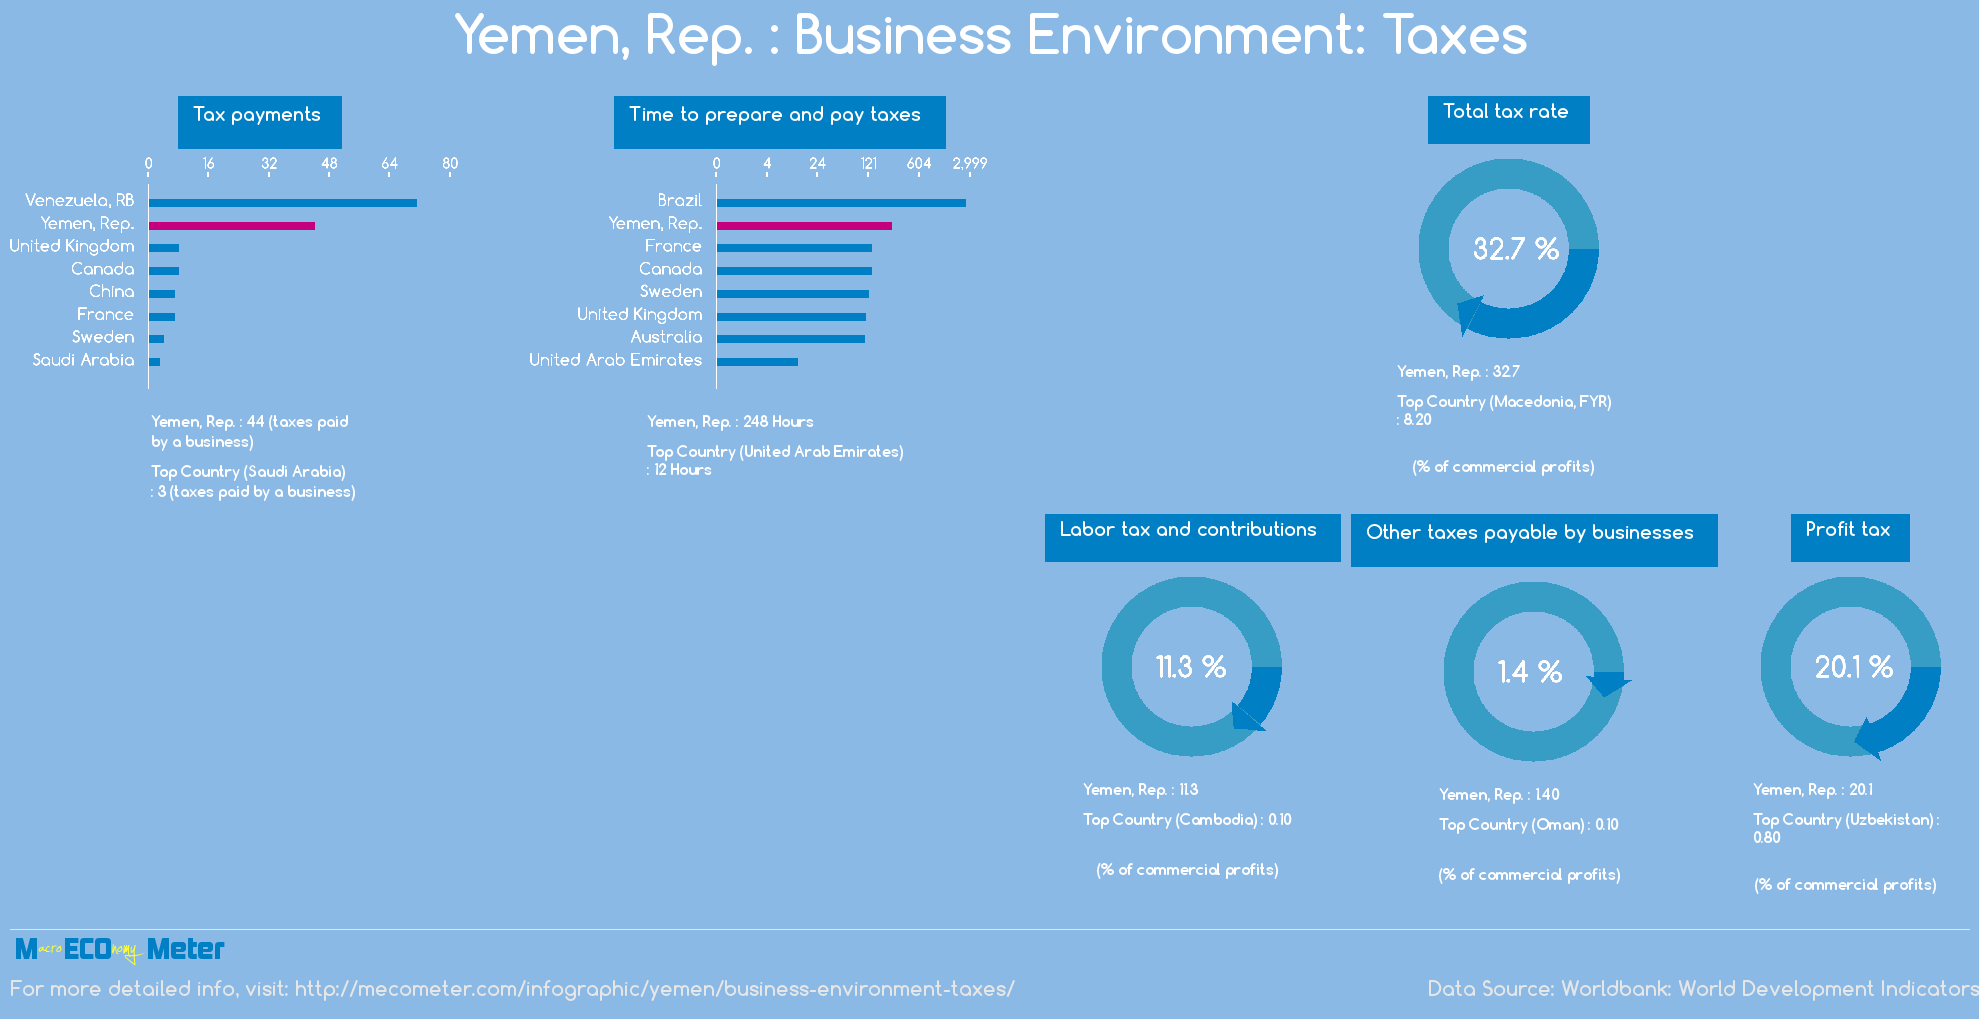 Yemen, Rep. : Business Environment: Taxes